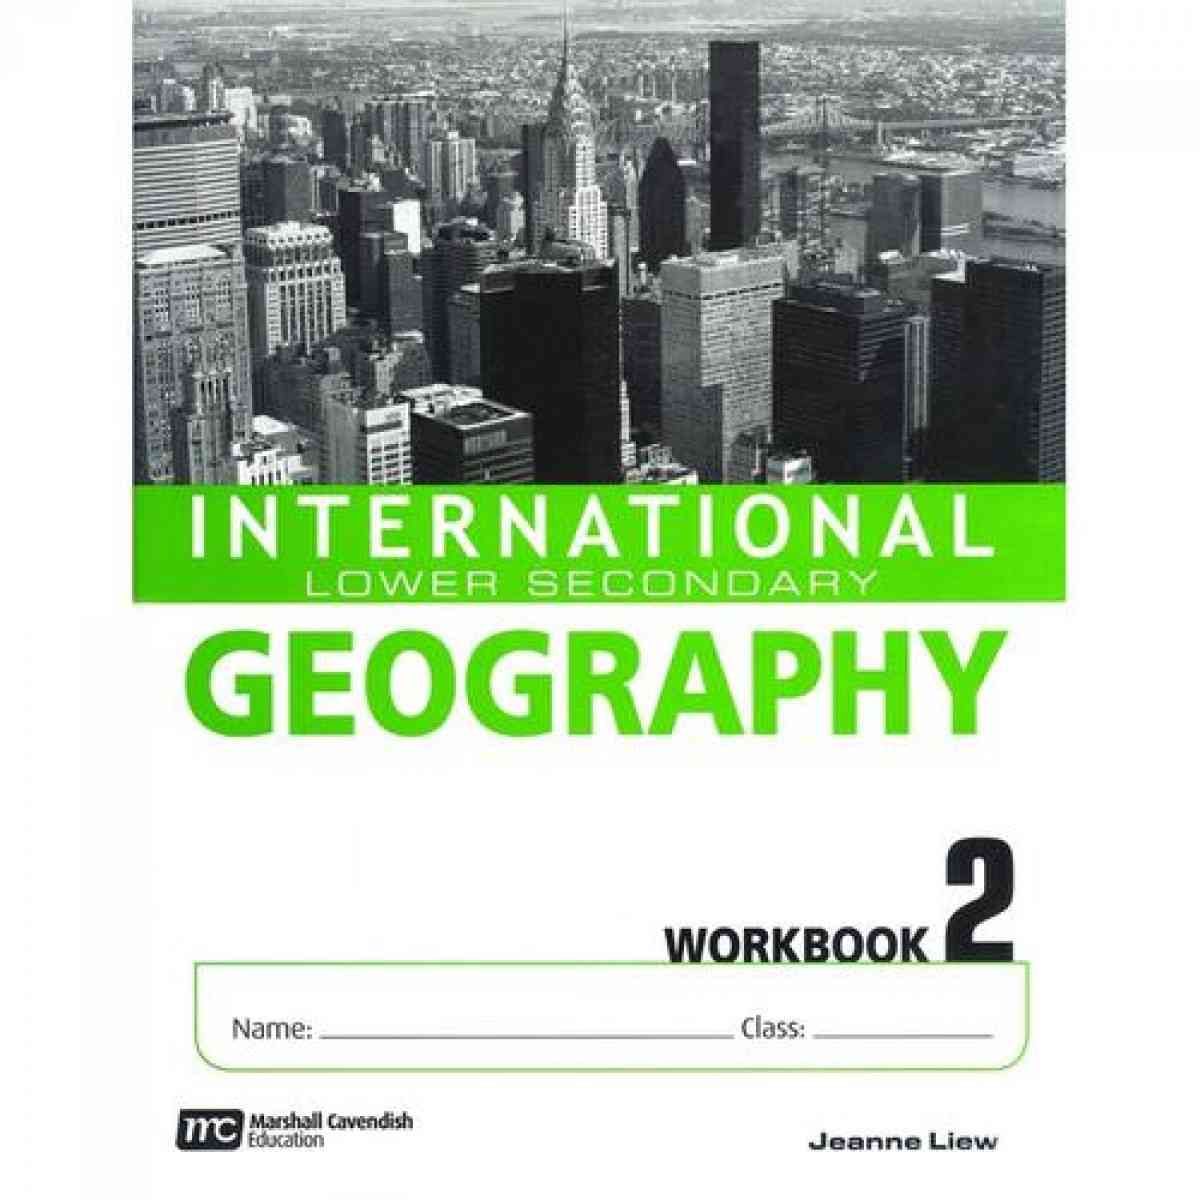 International Lower Secondary Geography Workbook 2